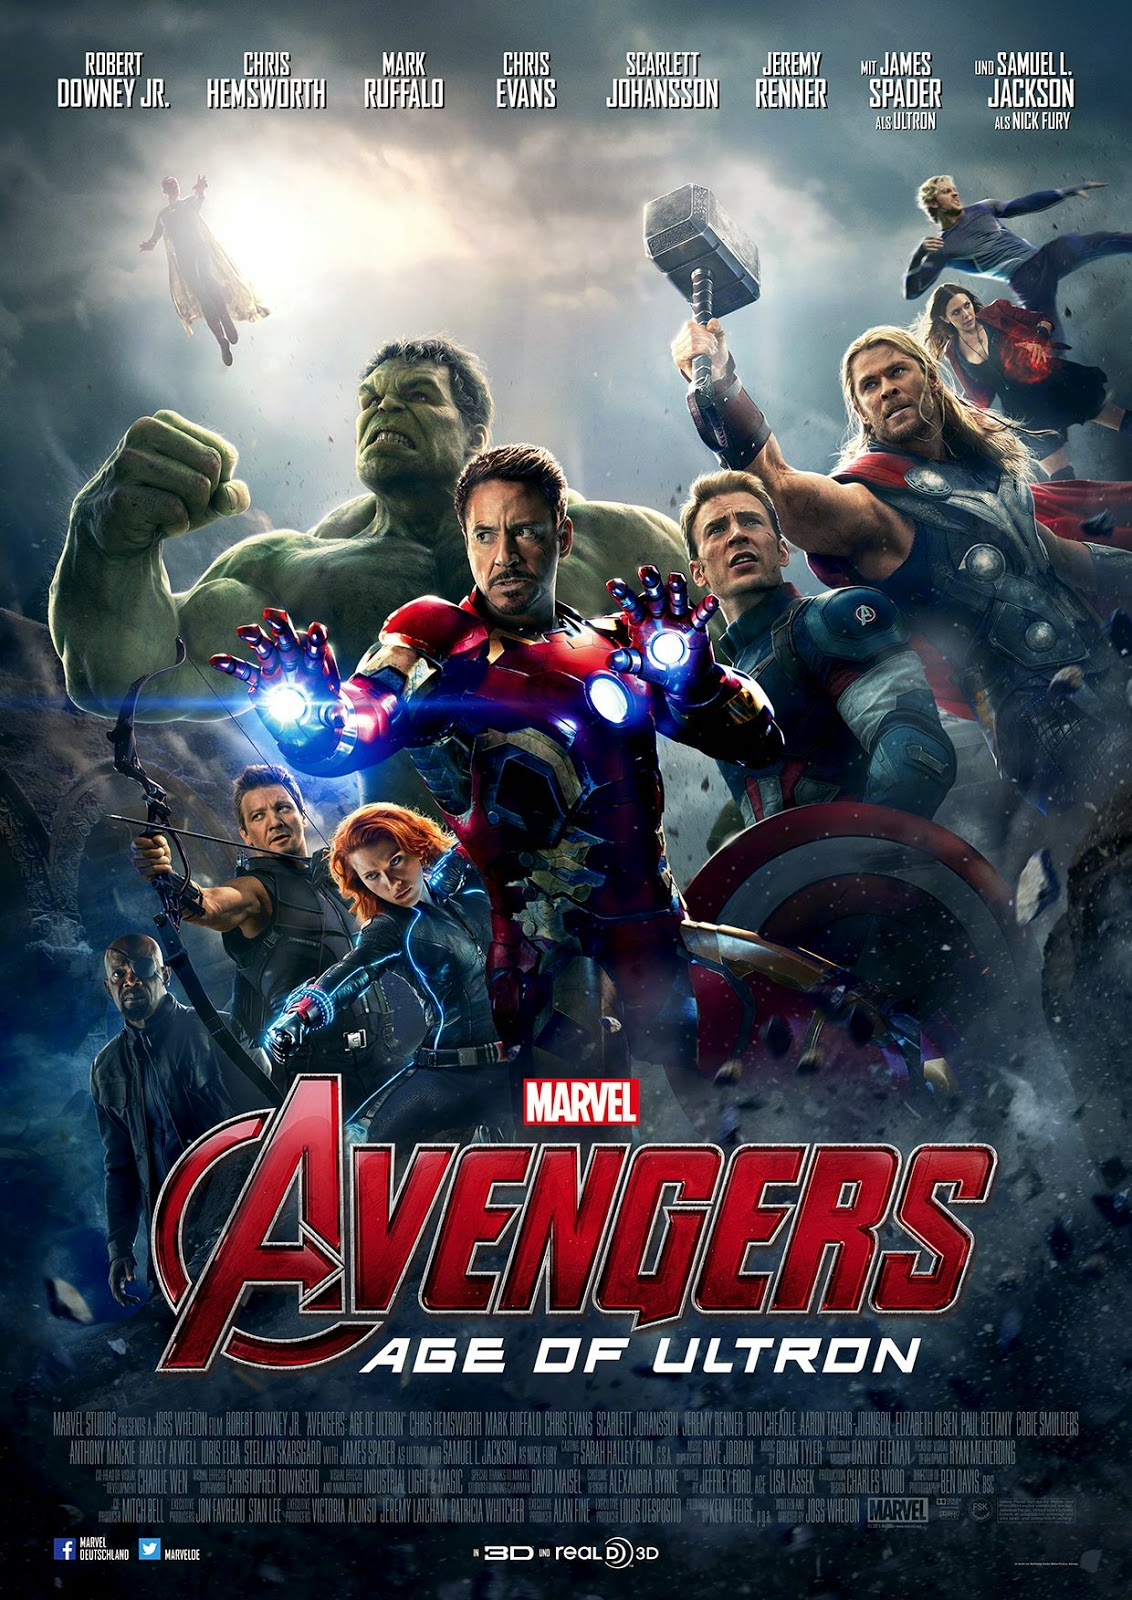 Avengers Age Of Ultron 2015 Joss Whedon The Gizzle Review